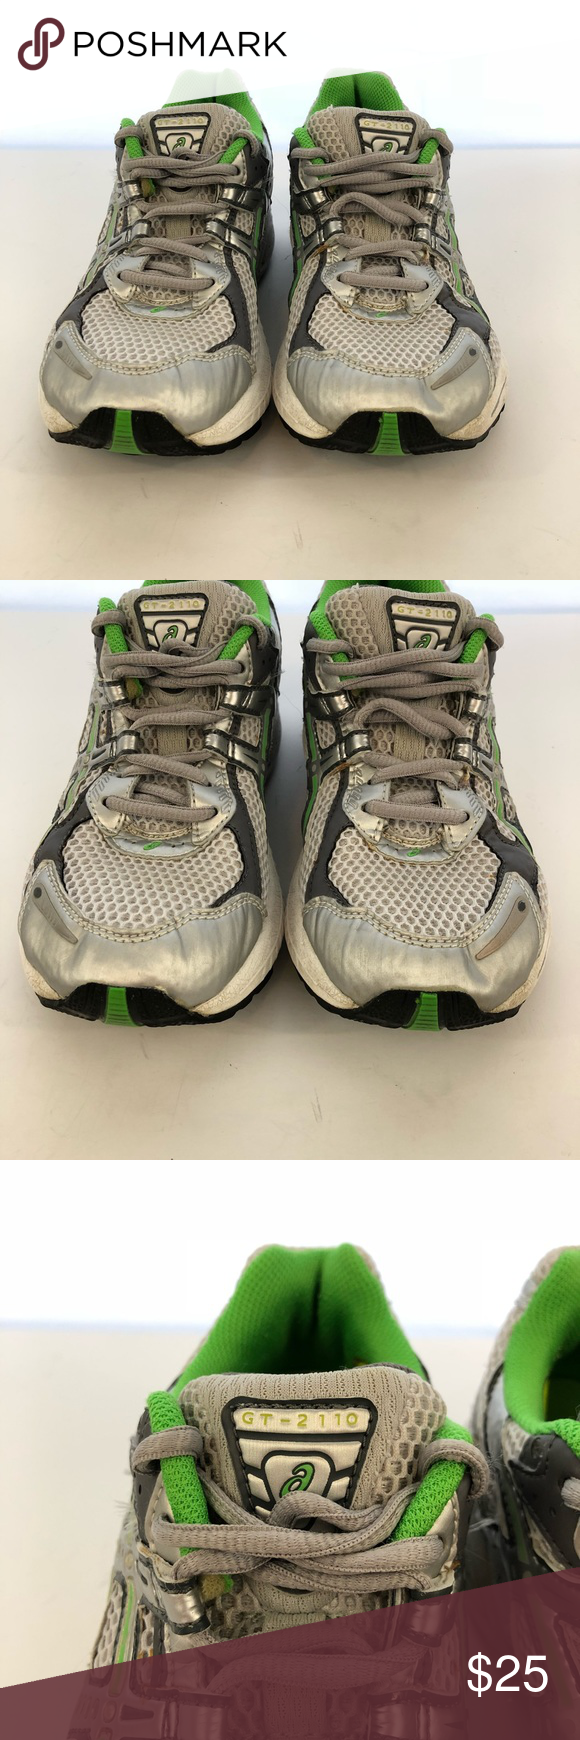 ASICS GT 2110 Women s Running shoes size 7.5 The product you are purchasing  is a pair 9cad2e8473